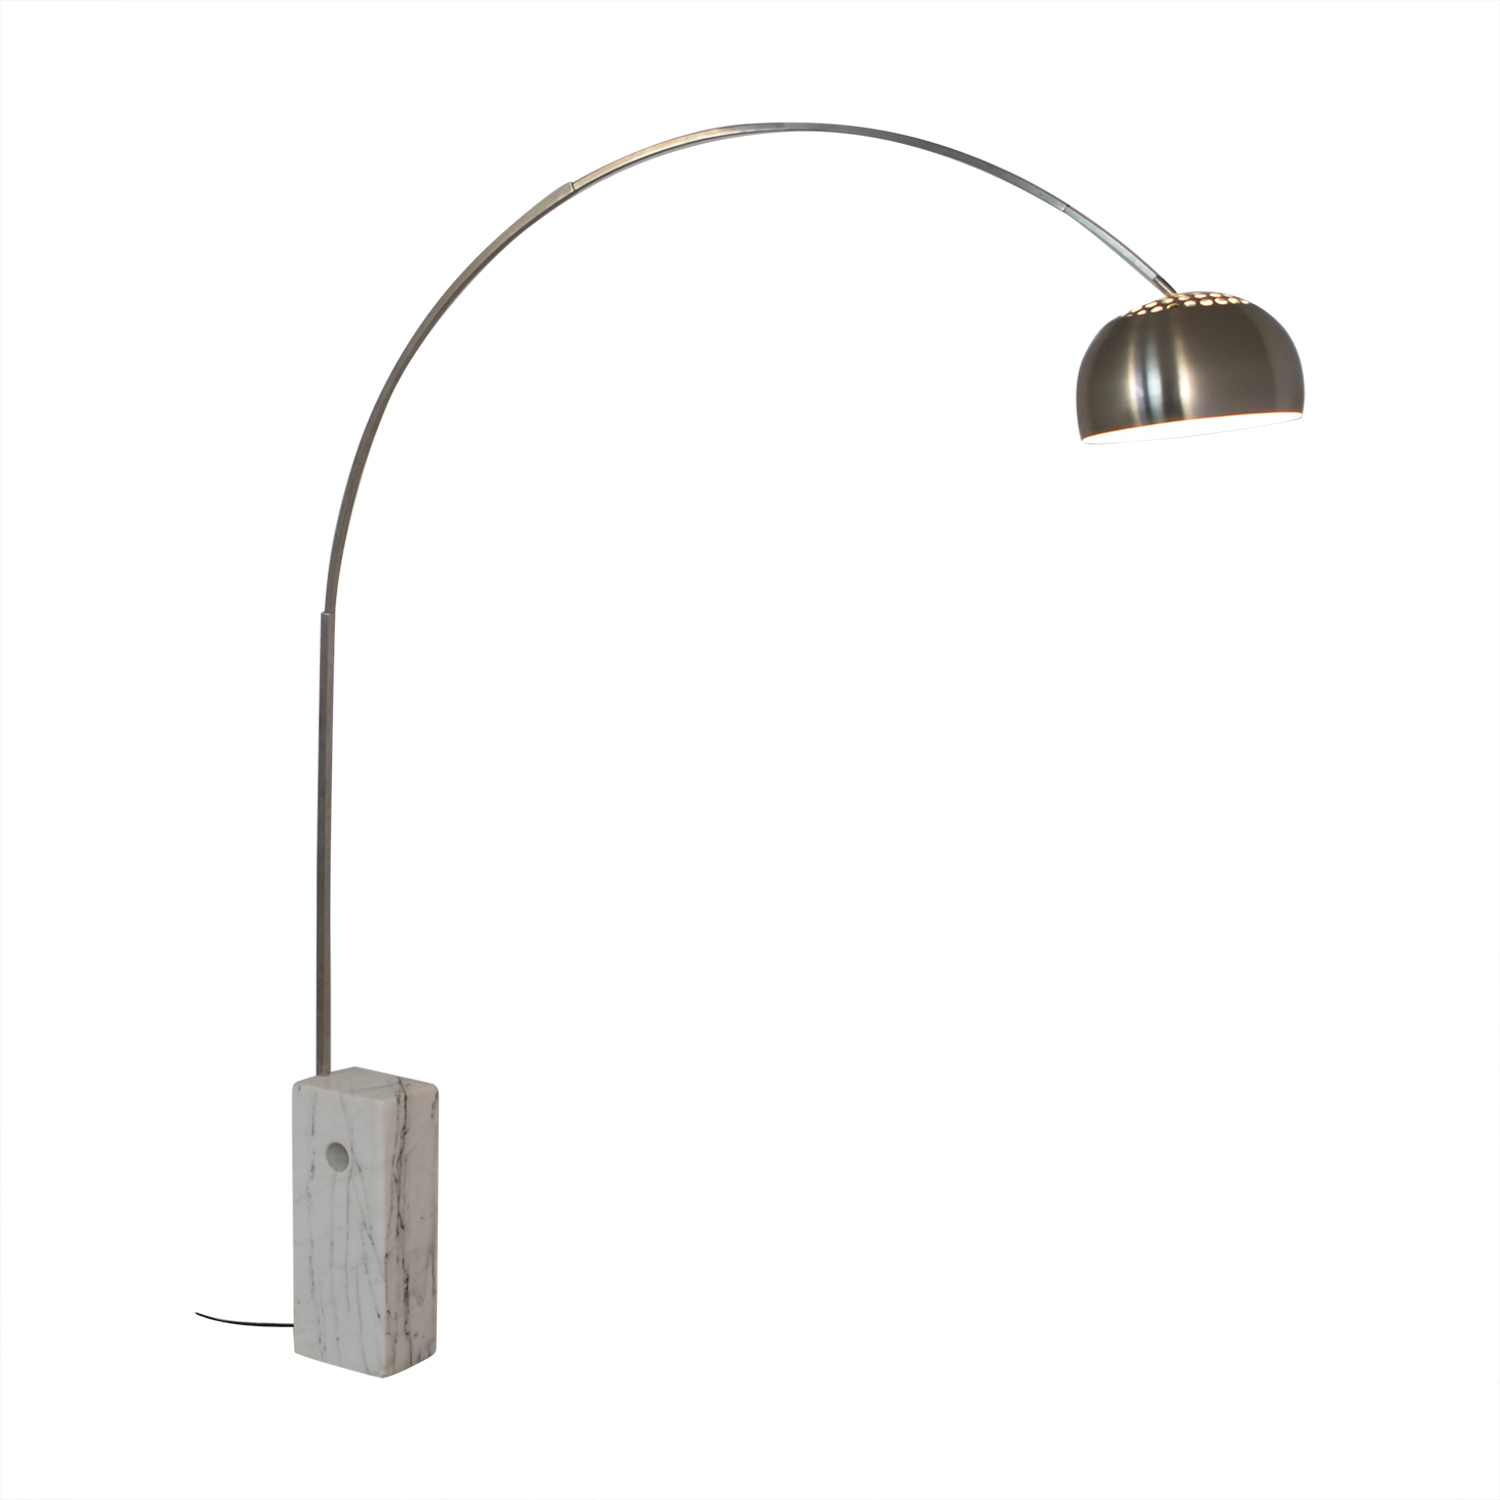 France and Son France and Son Cora Arc Floor Light price